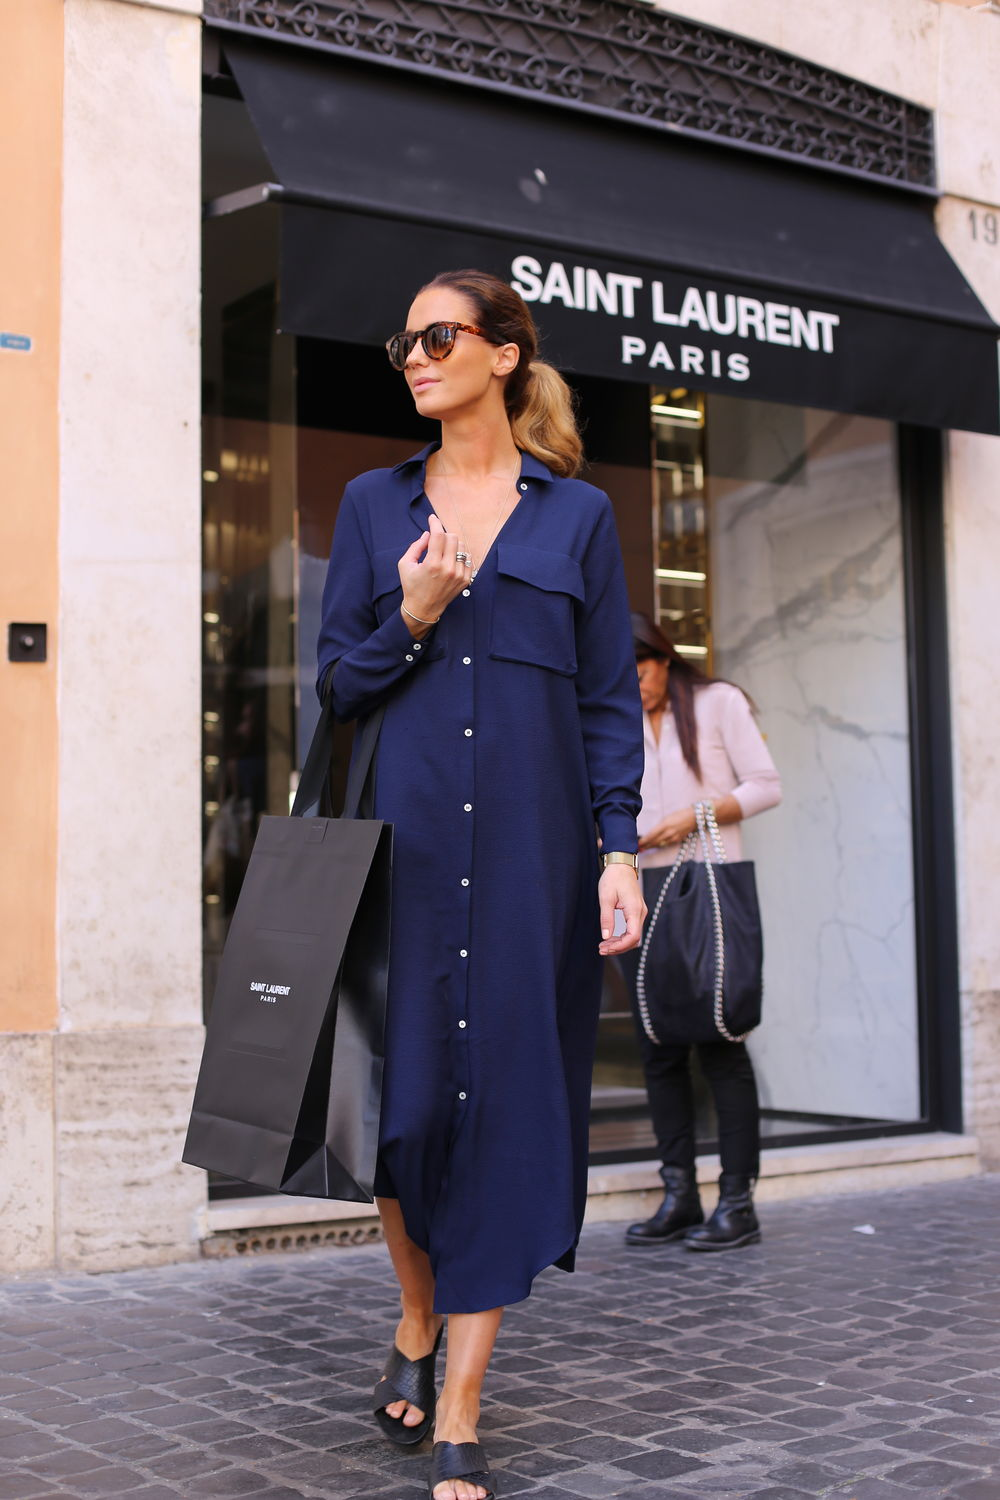 bc35965f3c This long navy shirt dress looks great on Annette Haga. Try wearing  something similar with